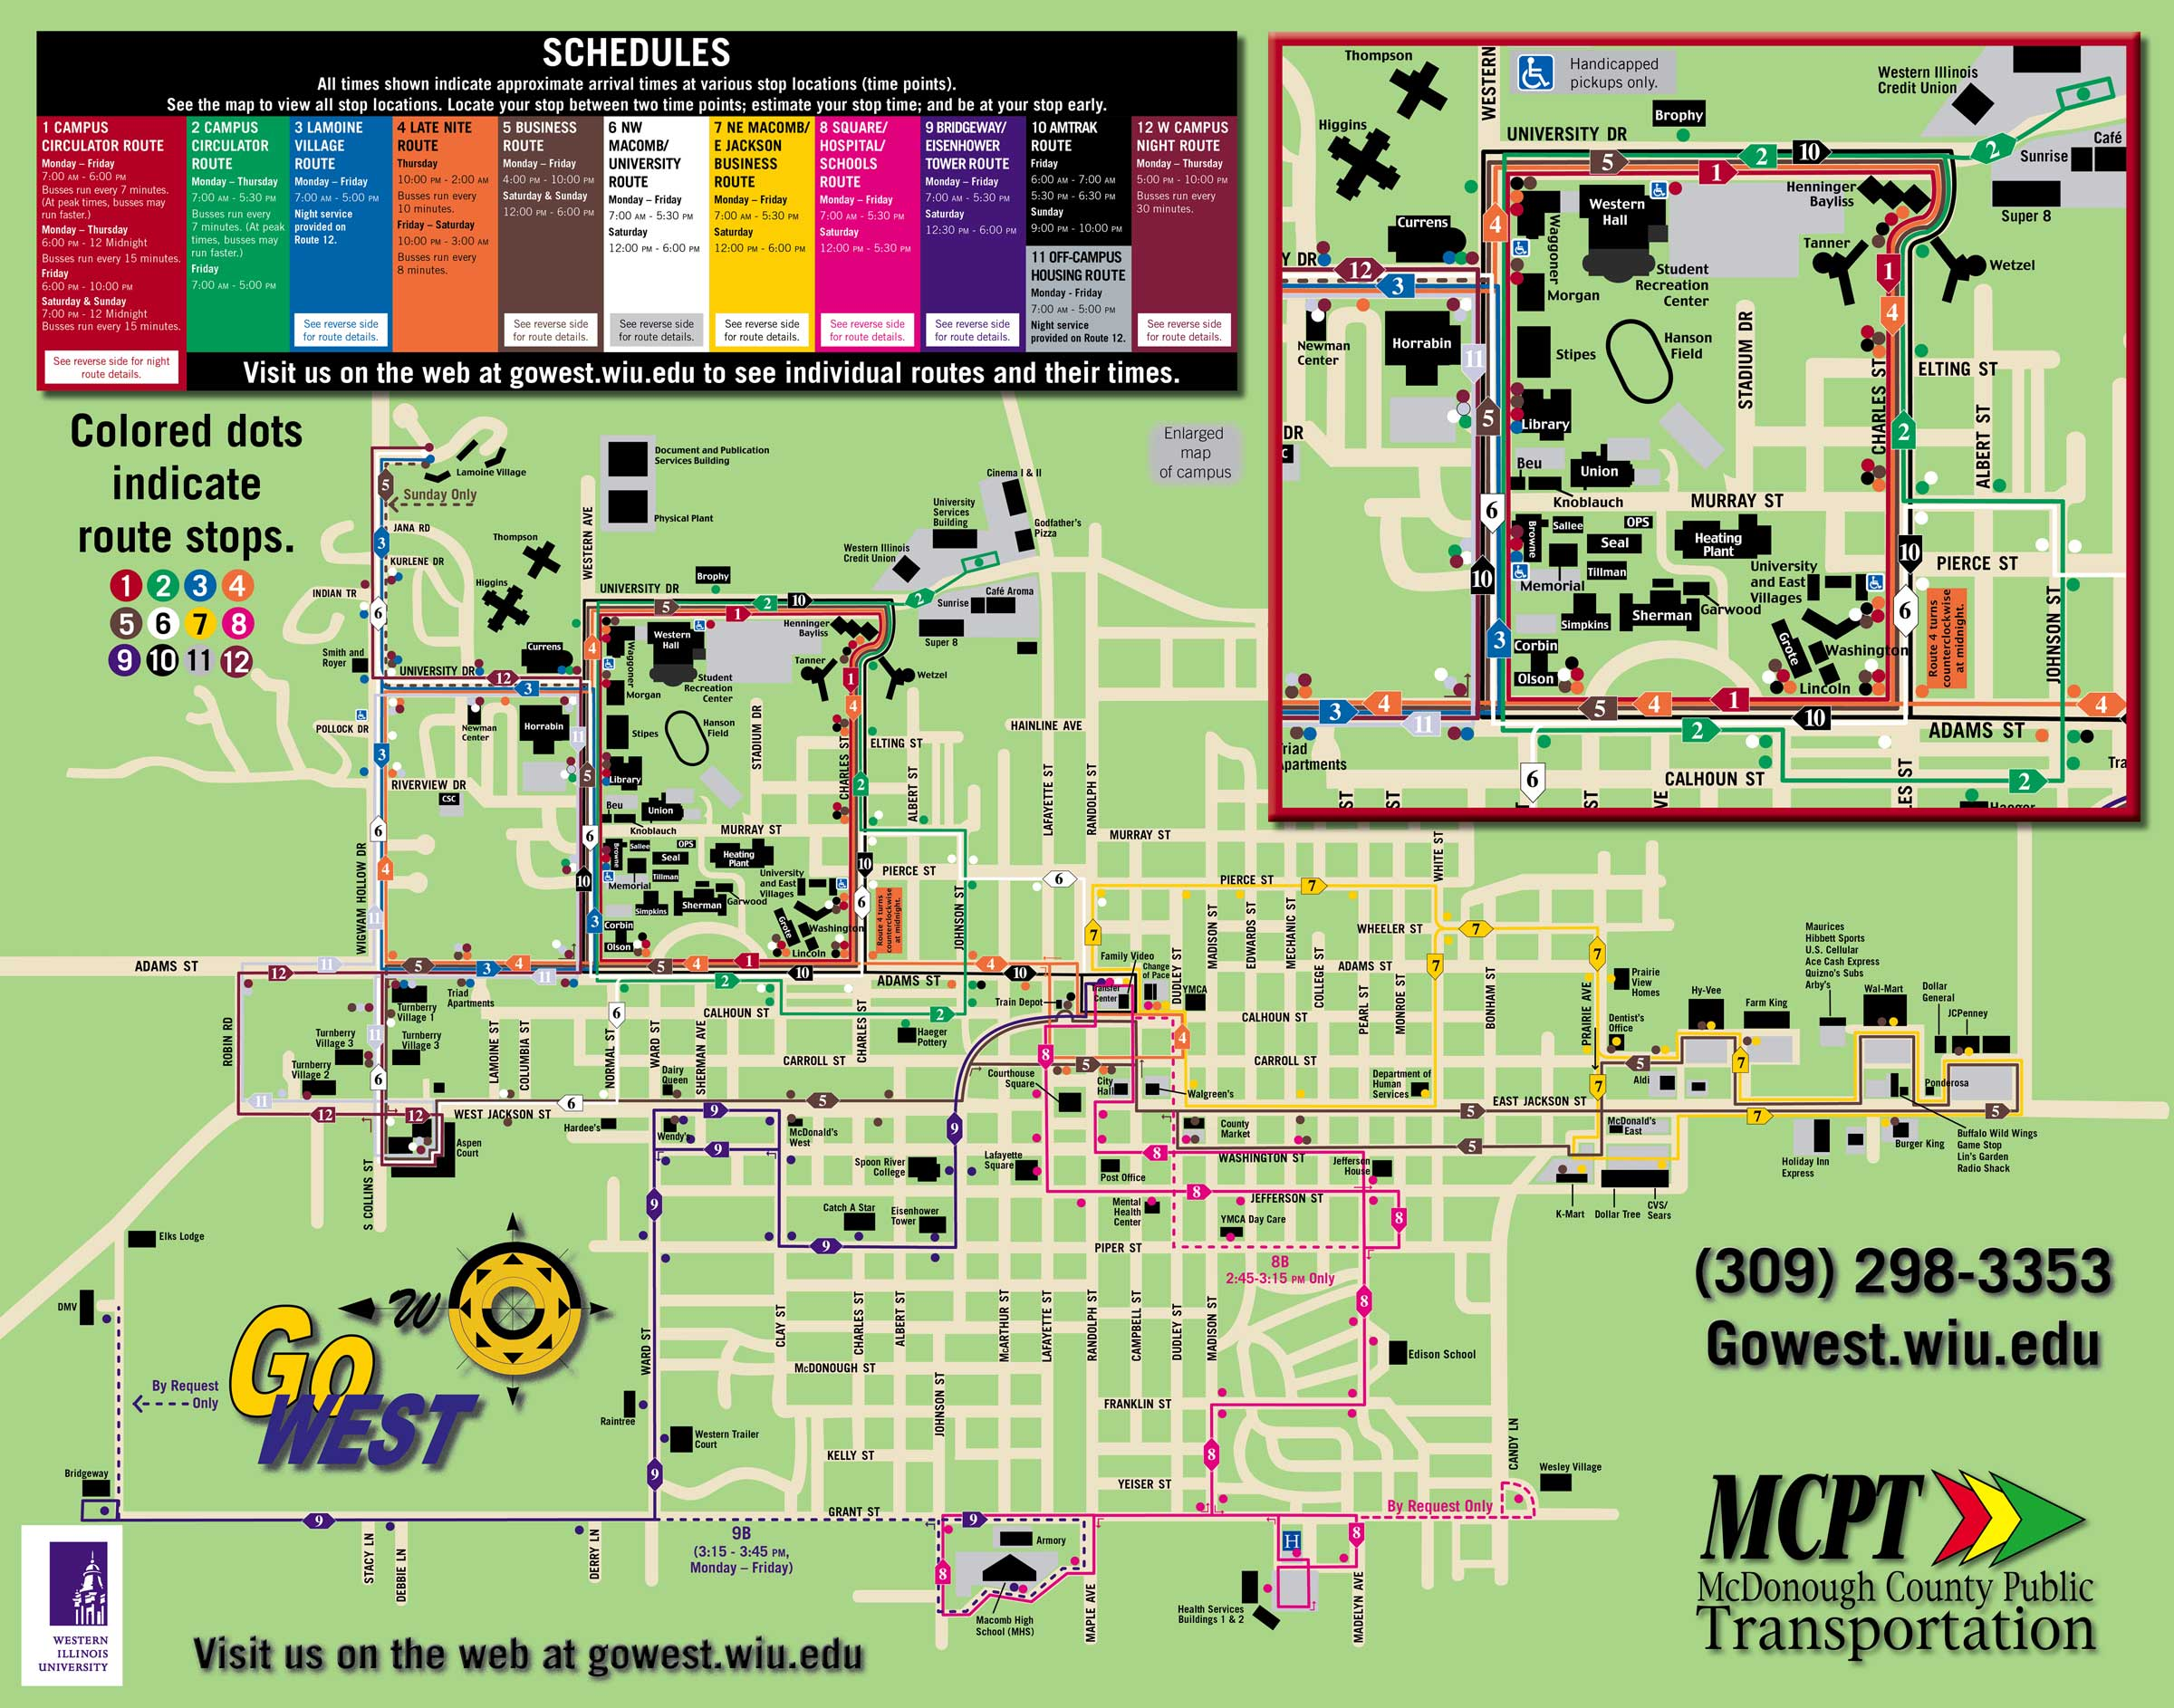 U Of Illinois Campus Map Pictures To Pin On Pinterest